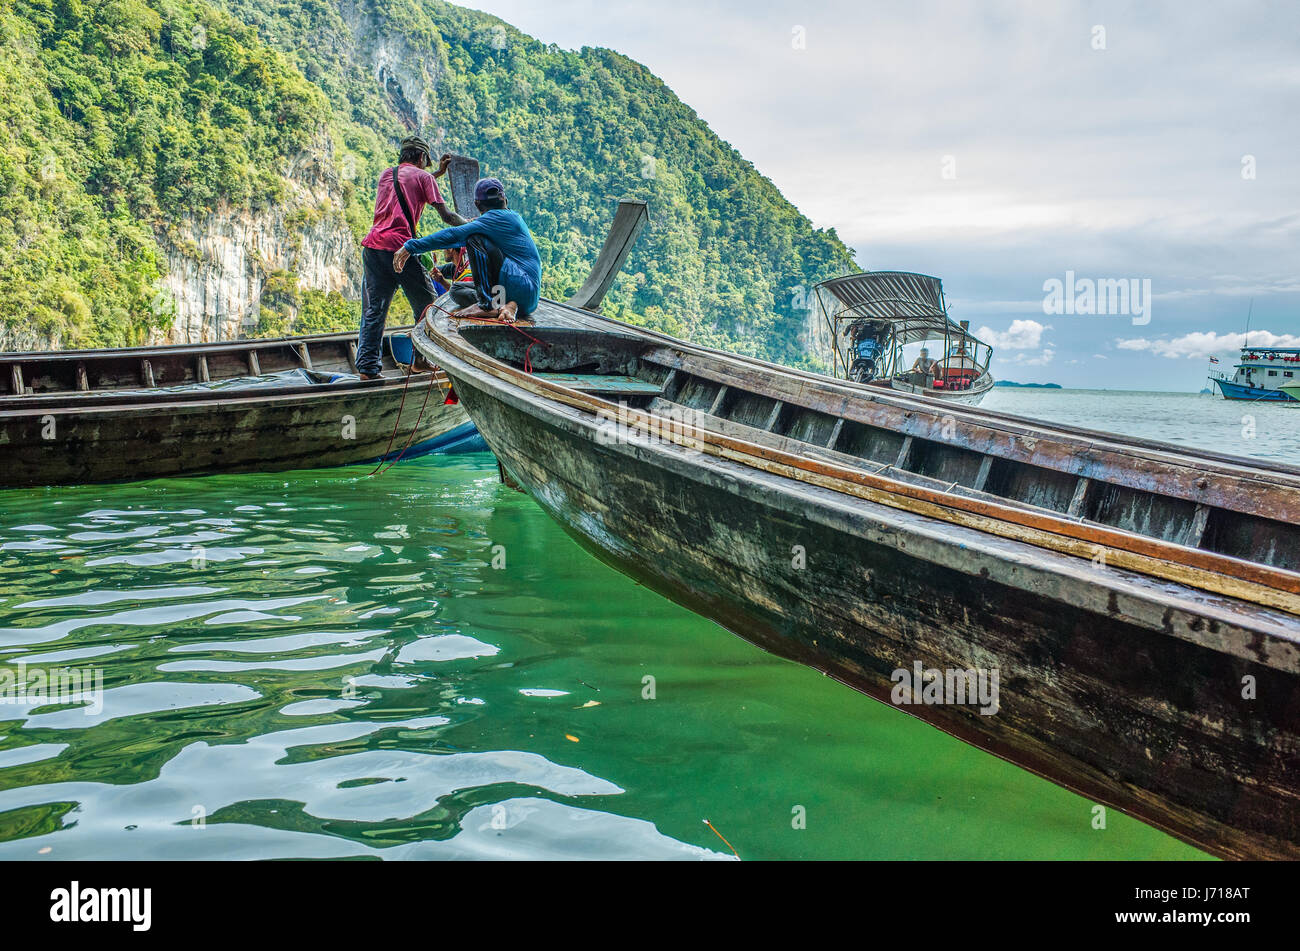 Boats and boaters in Phuket. Thailand. - Stock Image